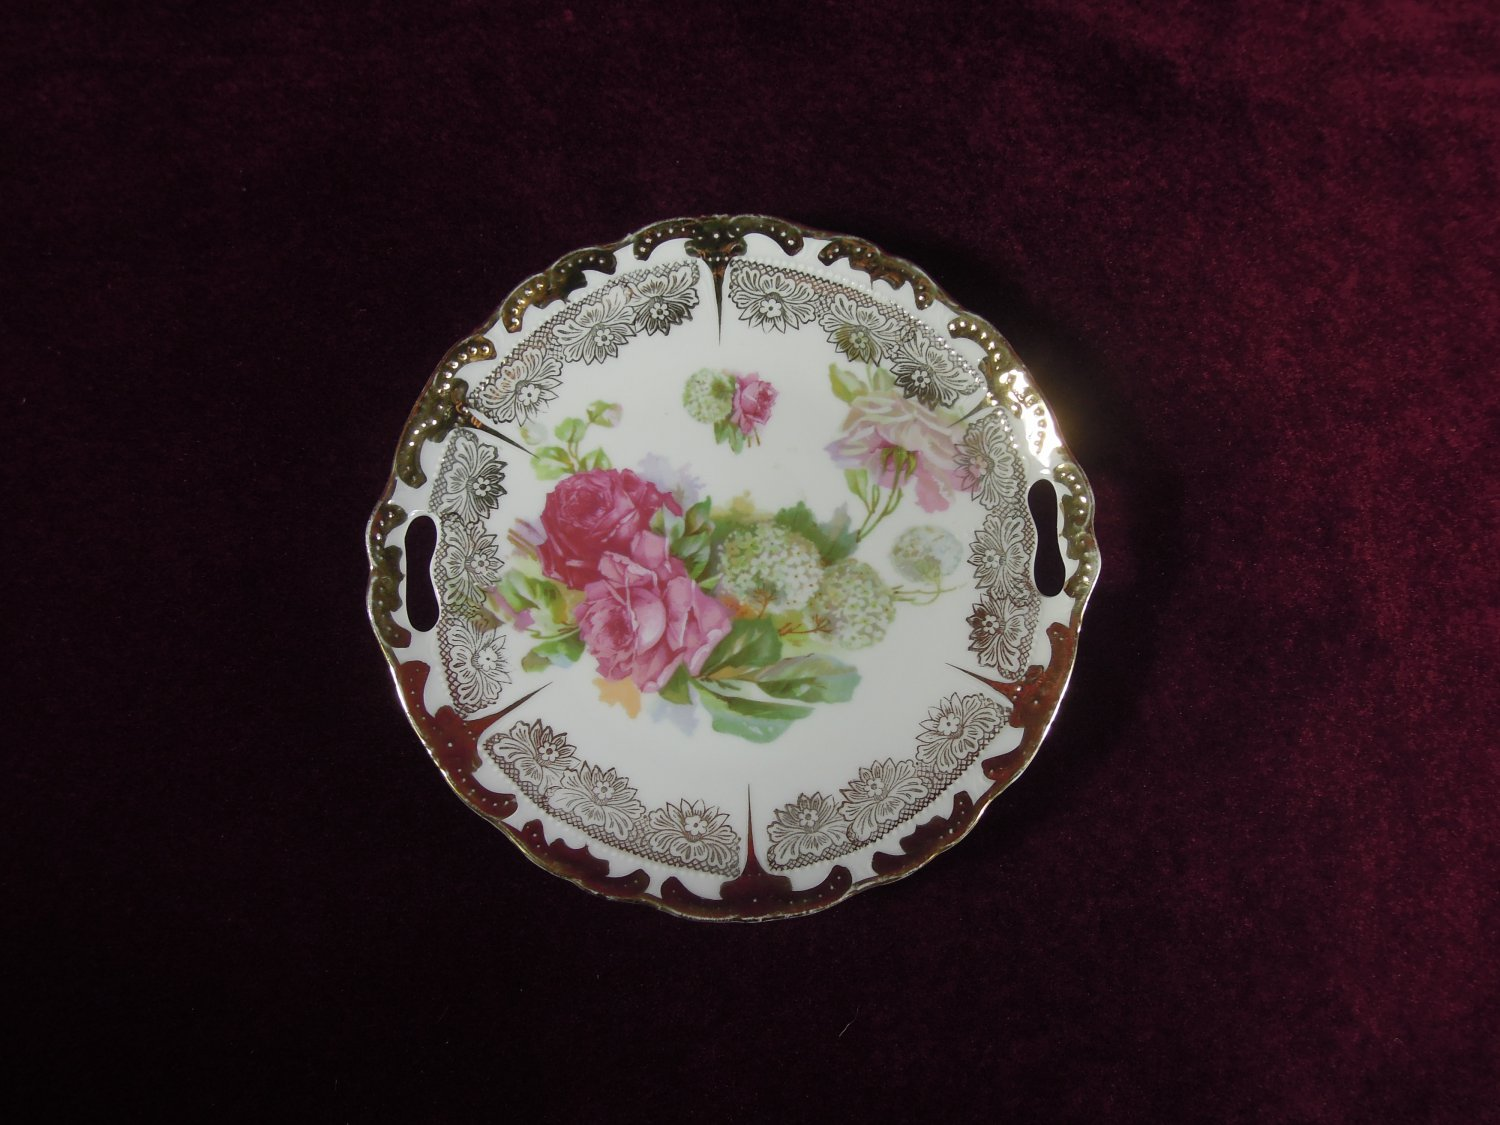 Antique Porcelain Cake Plate Roses Gold Accents Collectible